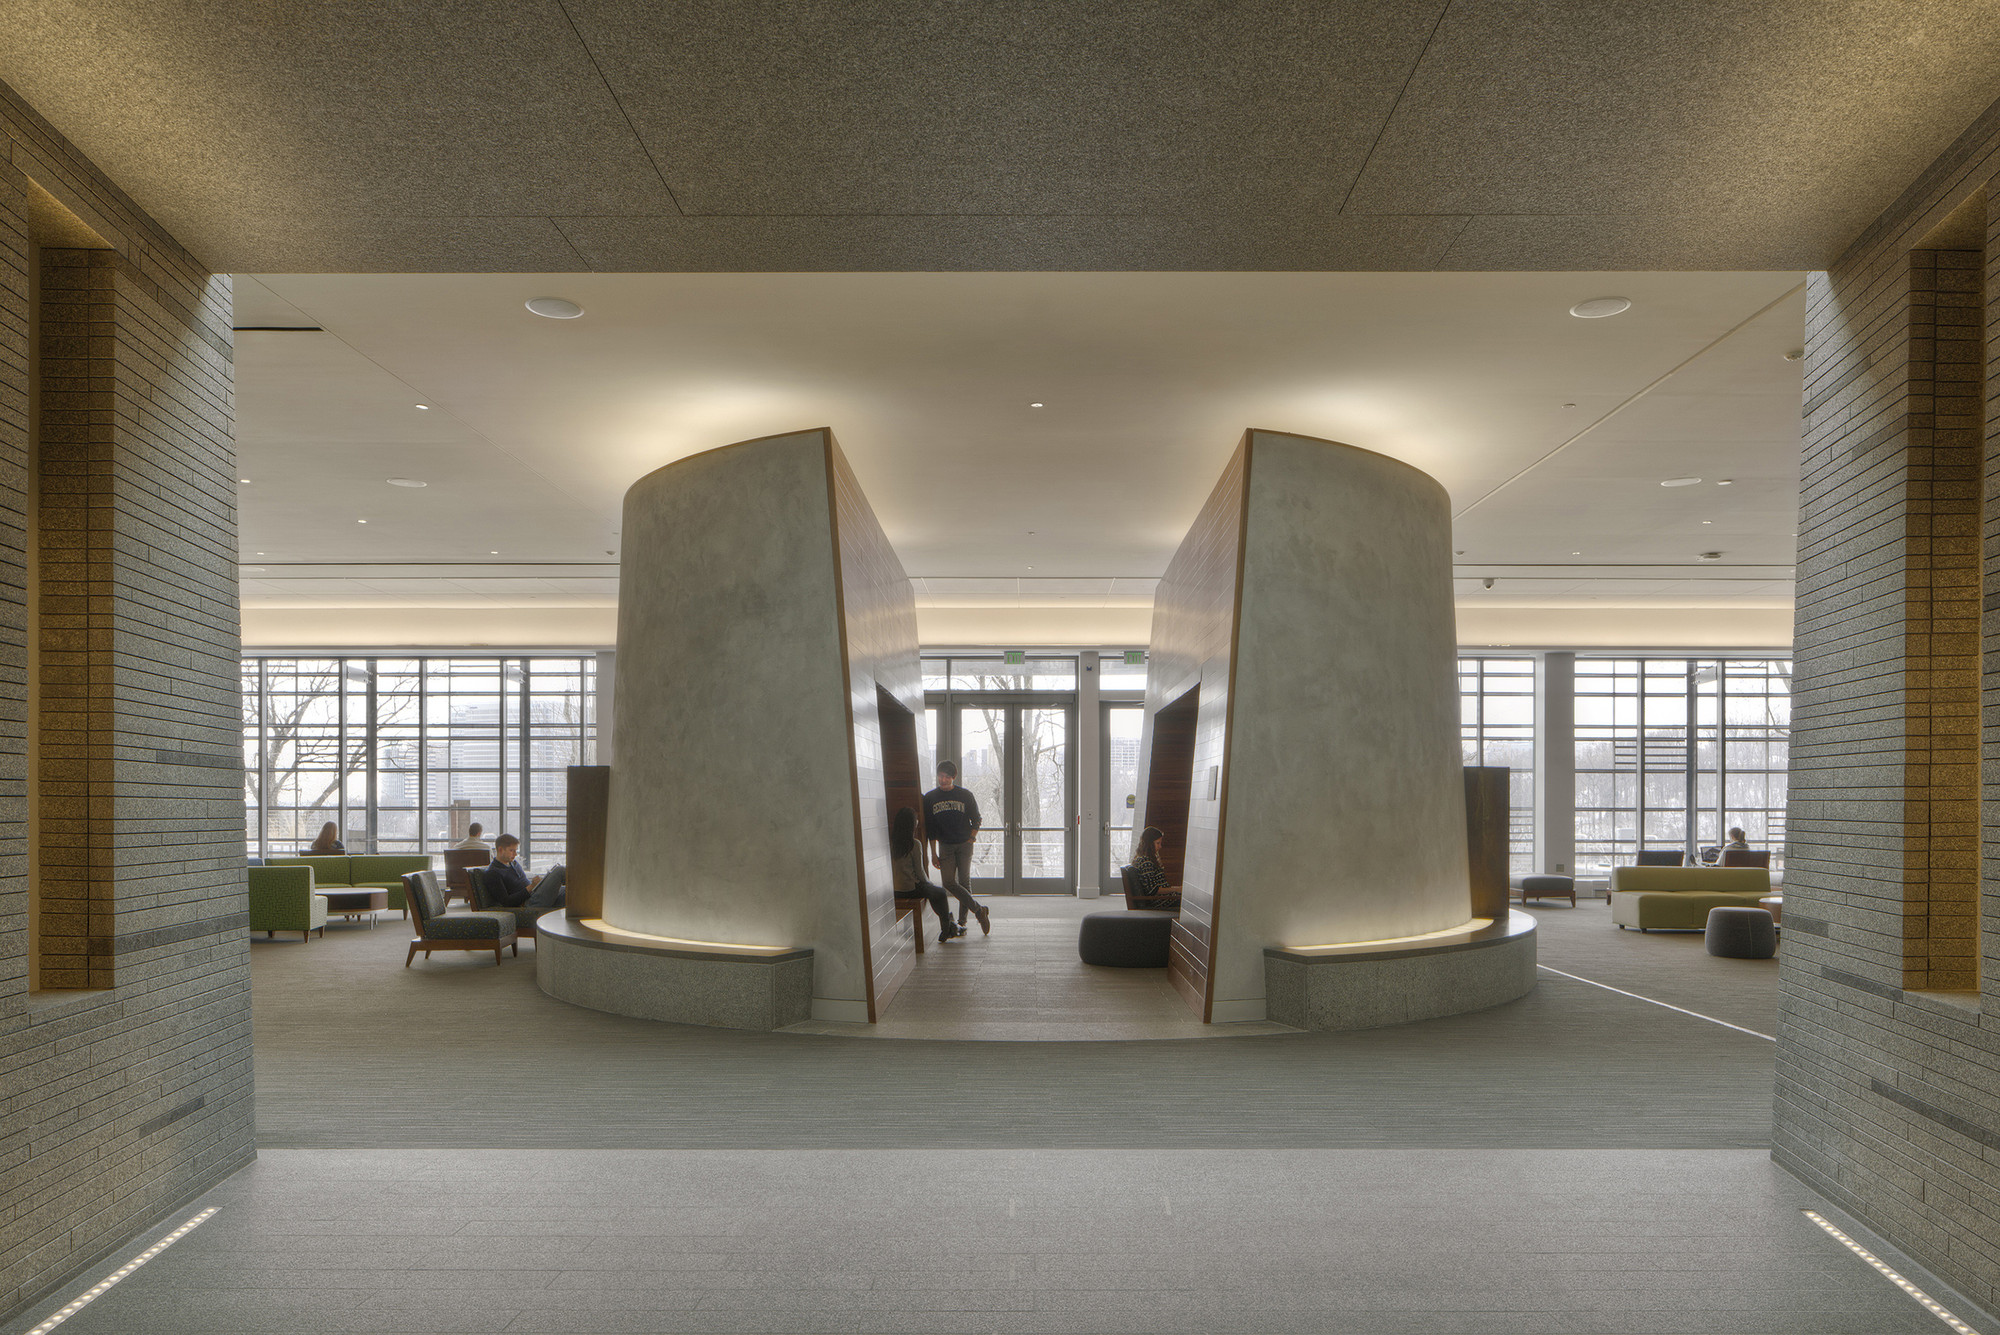 Student Center at Georgetown University / ikon.5 architects